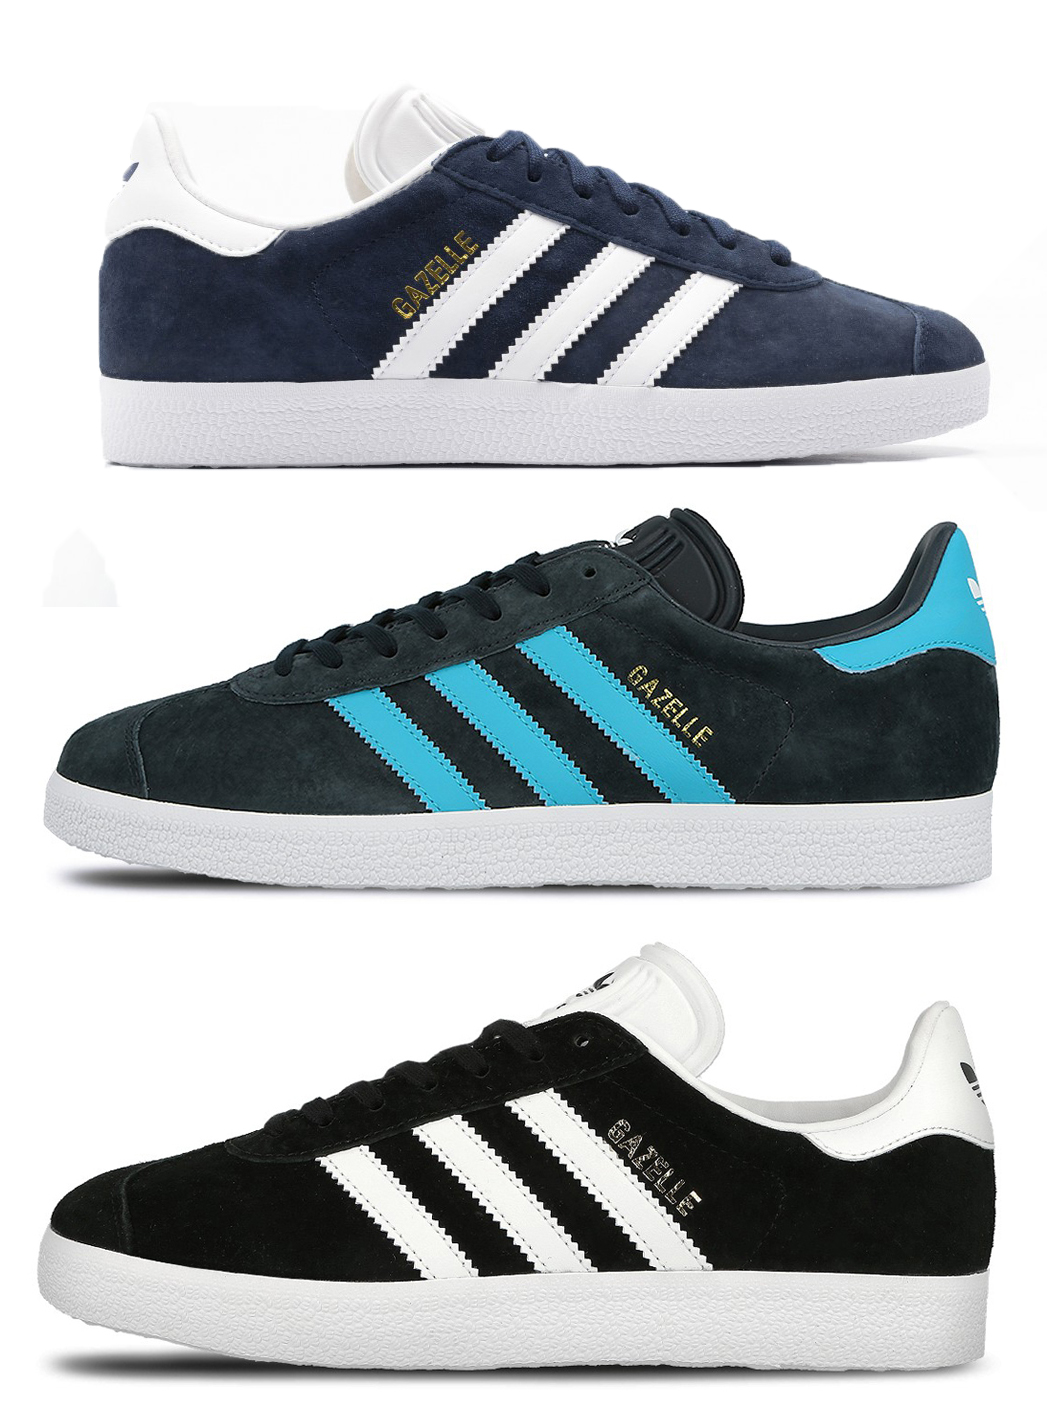 best website c3d9a 2170f New Mens adidas Gazelle Originals Smart Casual Leather Classic Shoes  Trainers